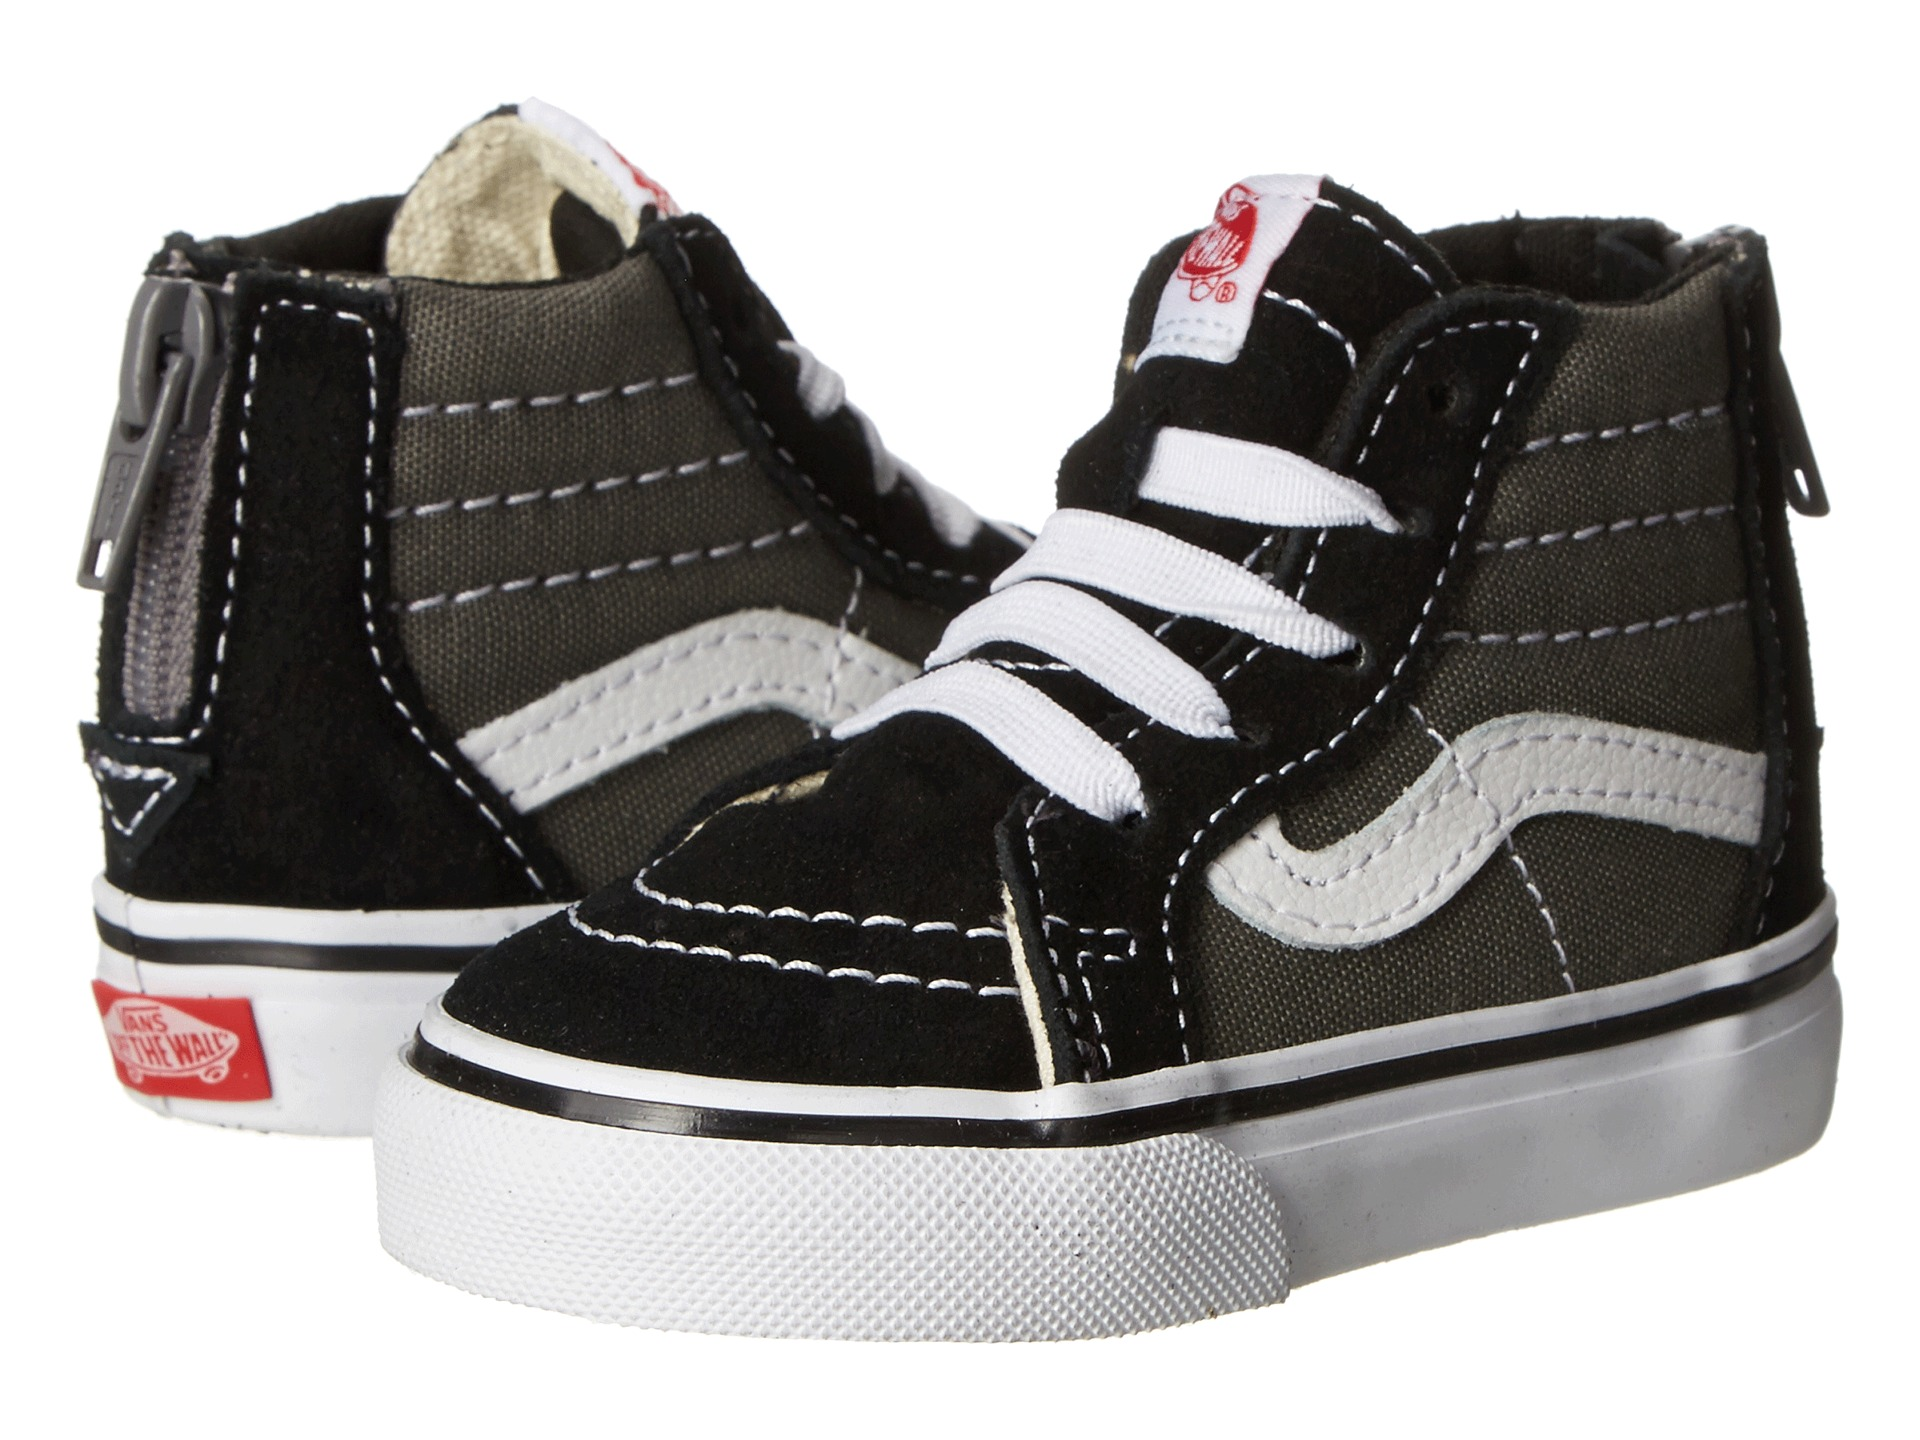 Vans Shoes Kid Size